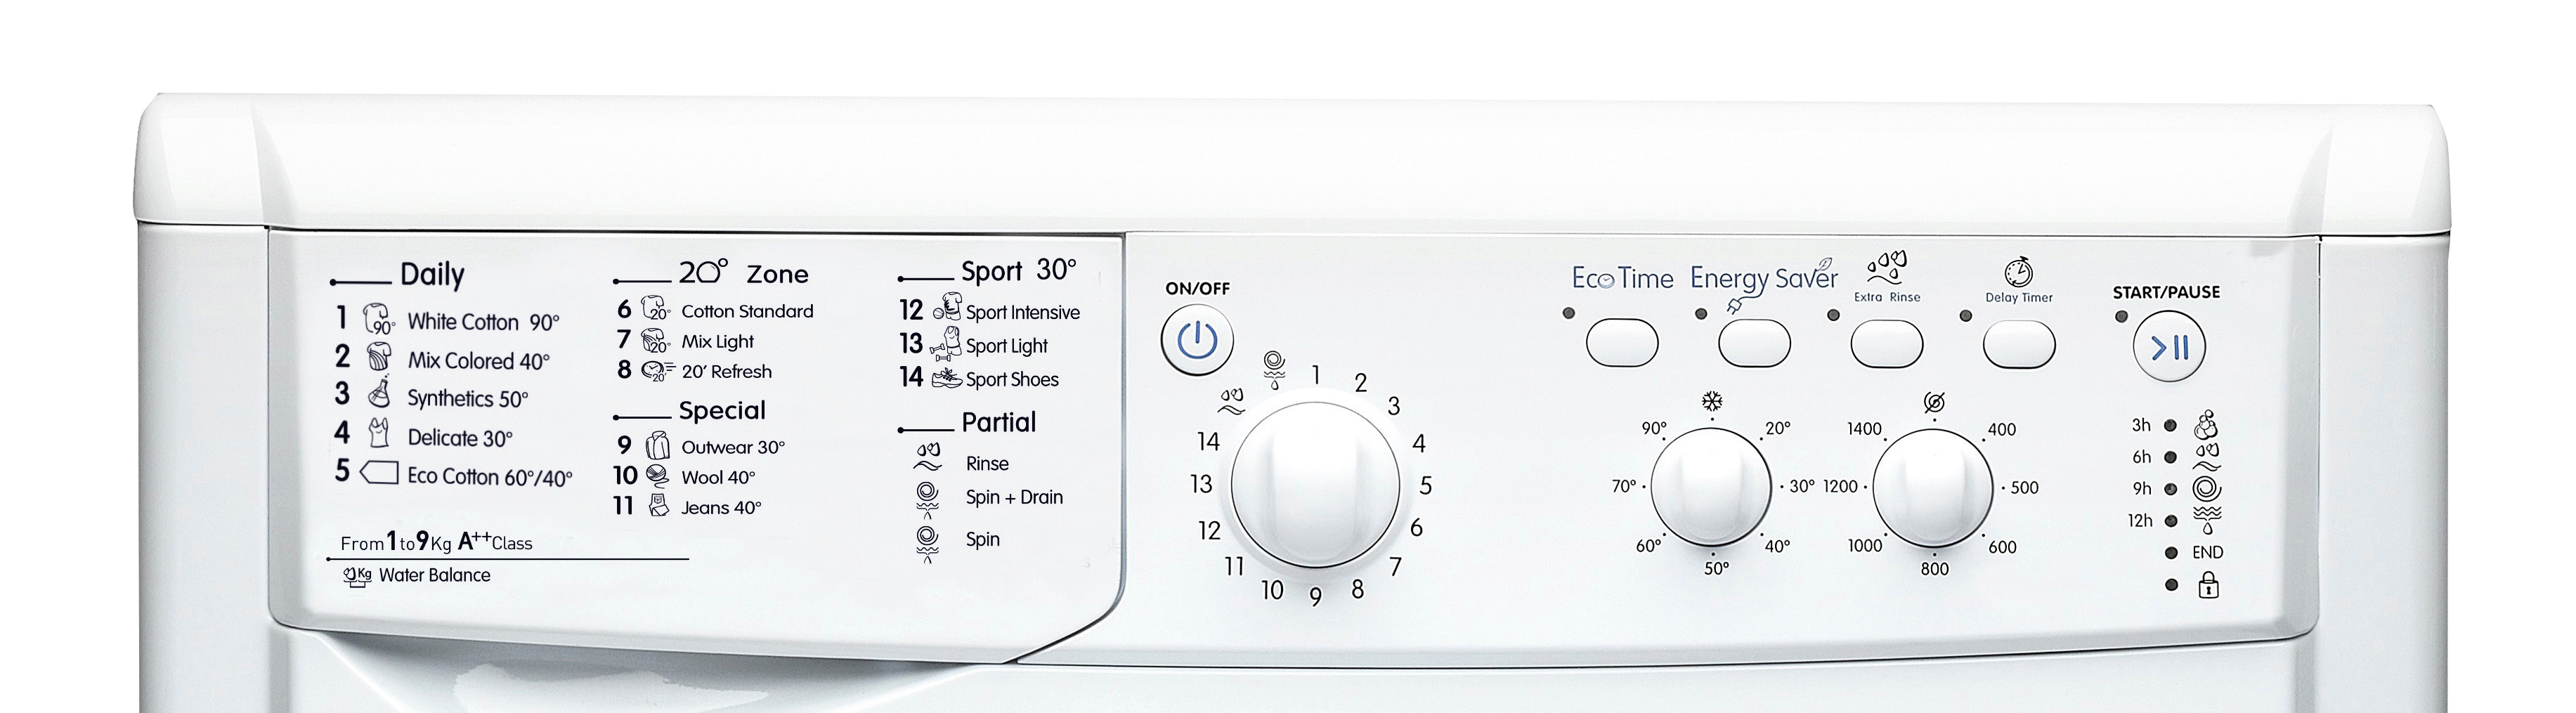 Washing Machine Buying Guide – Currys